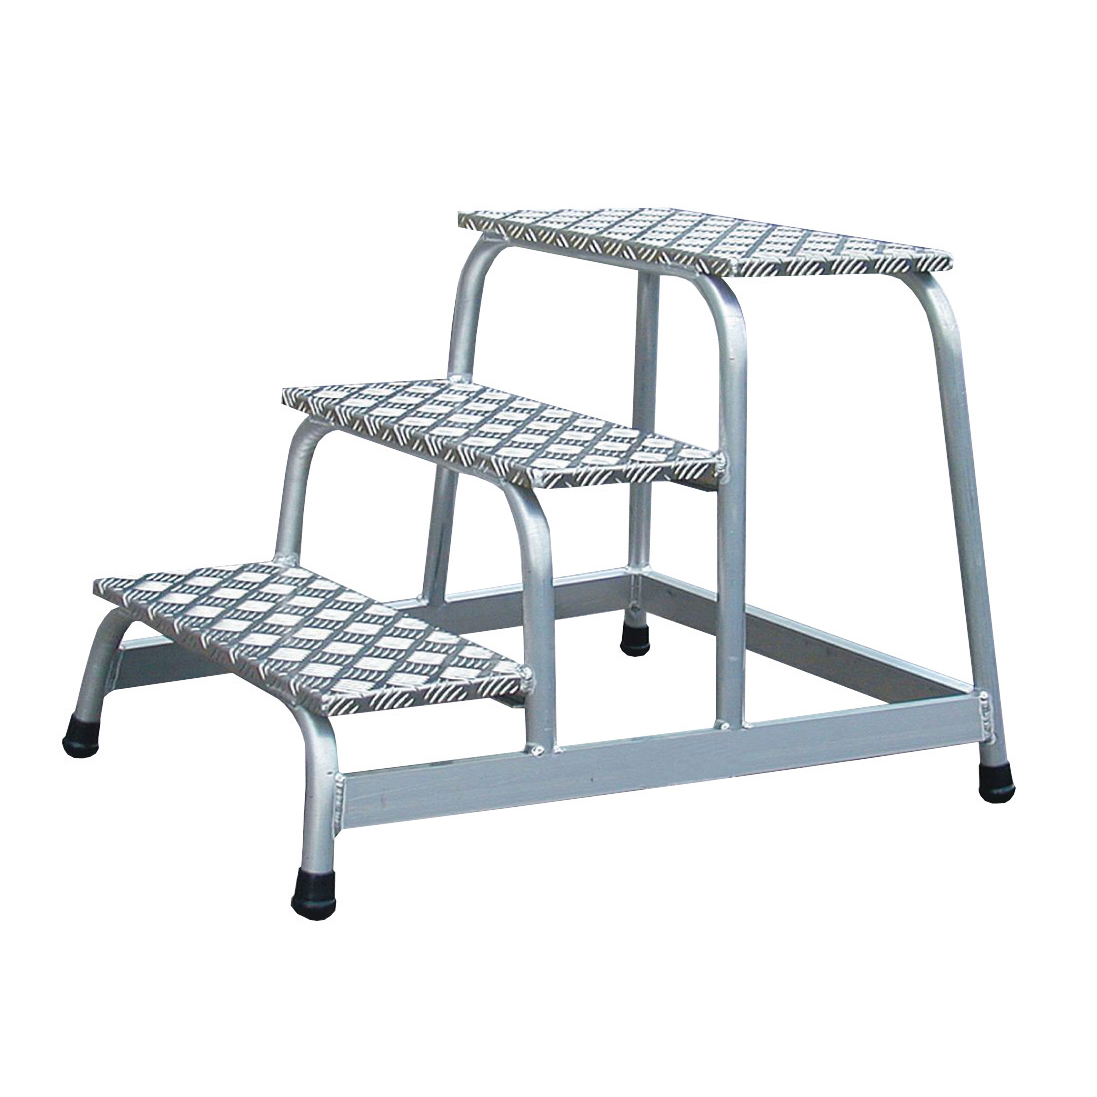 Ladders Platform Light Duty Slip Resistant Aluminium 1 Tread W520xD305xH200mm